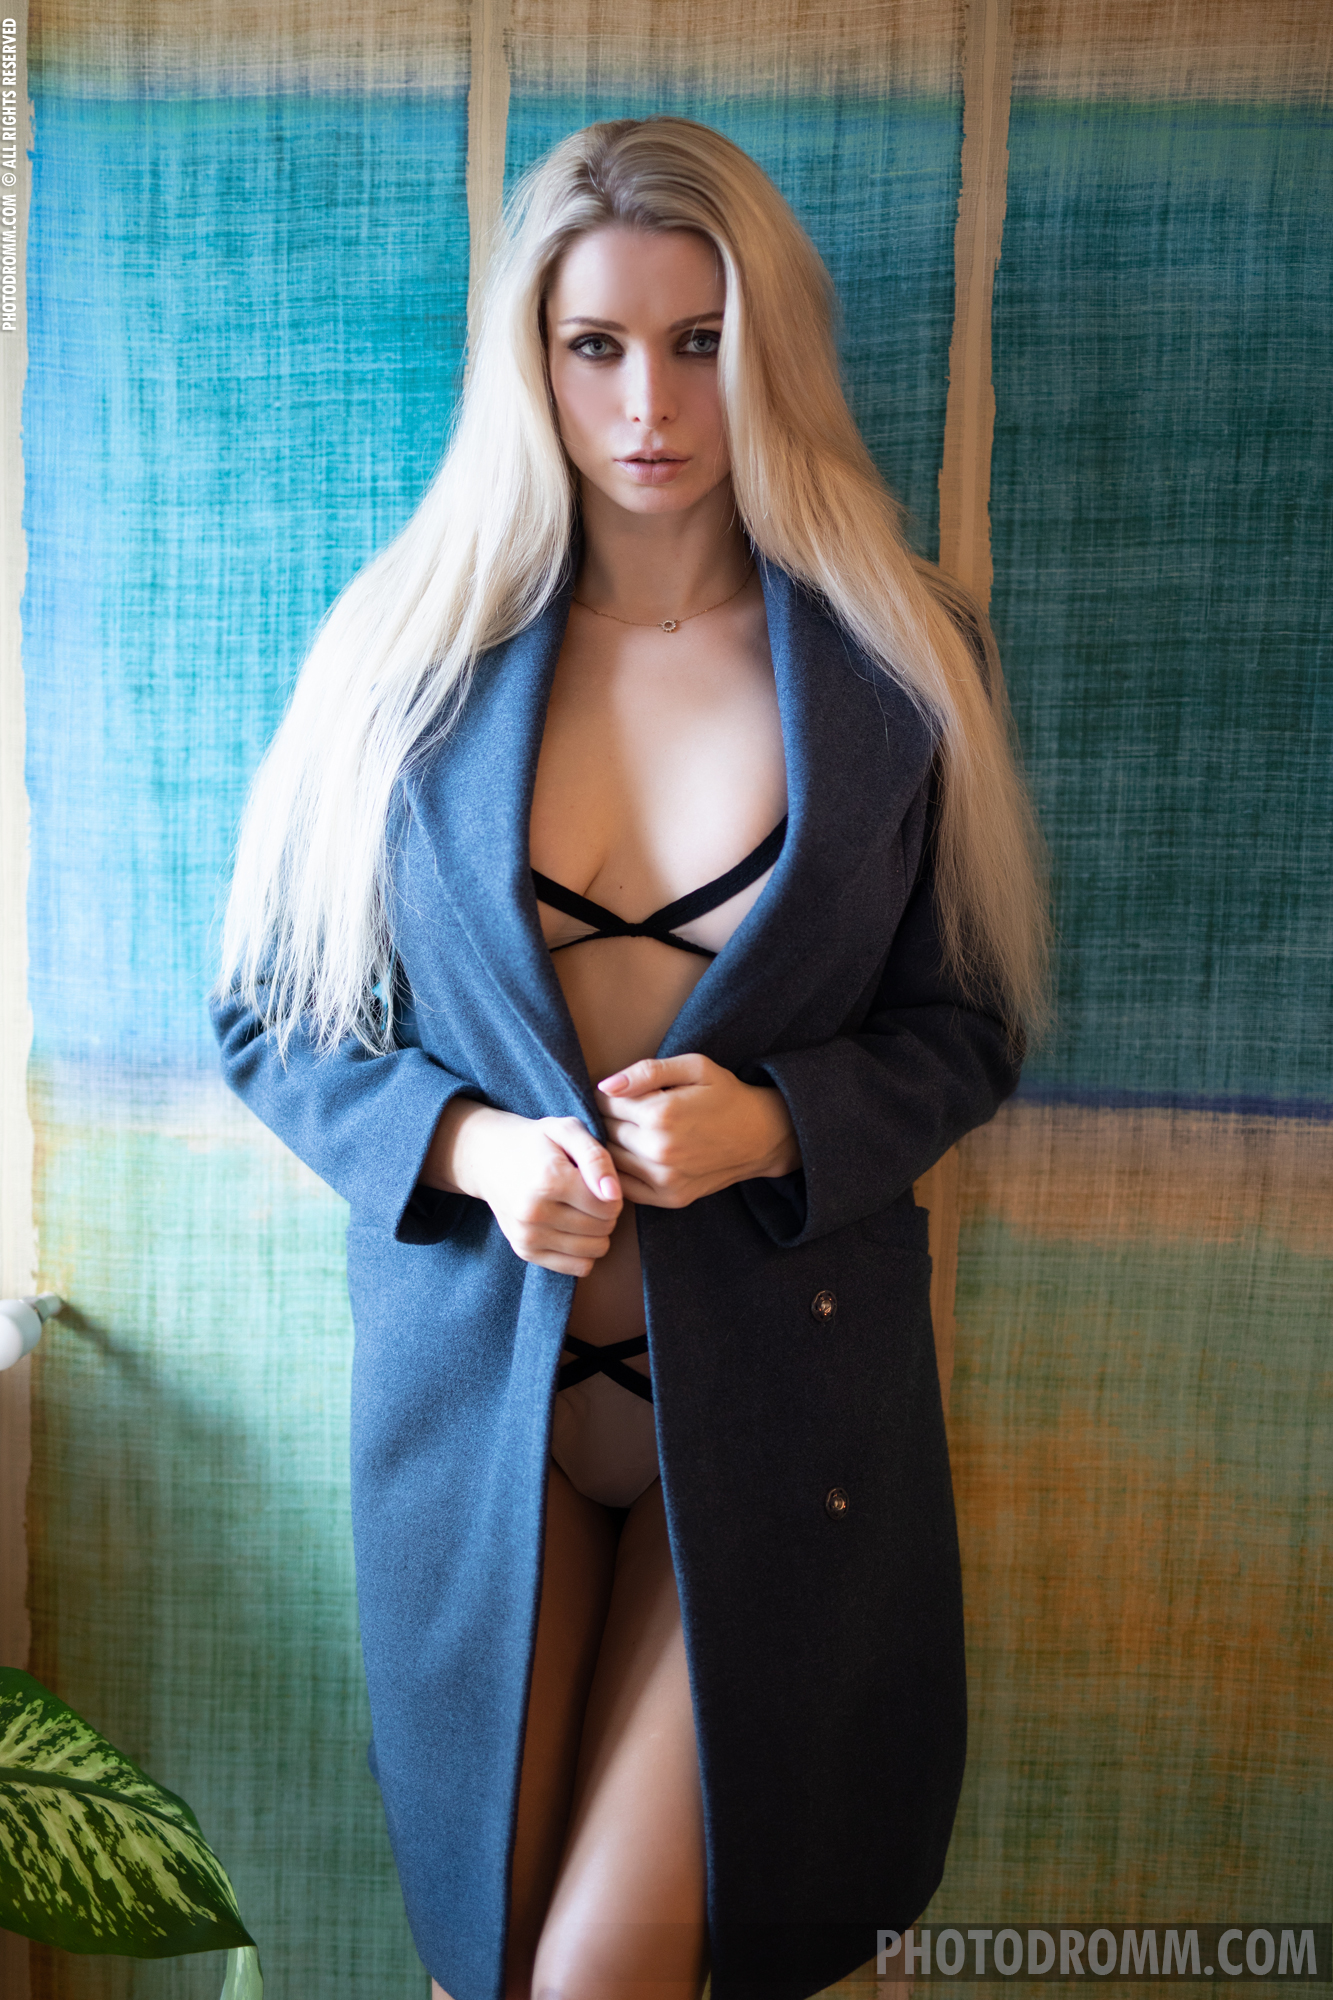 Katya Big Tit Blonde in a Big blue Coat for Photodromm